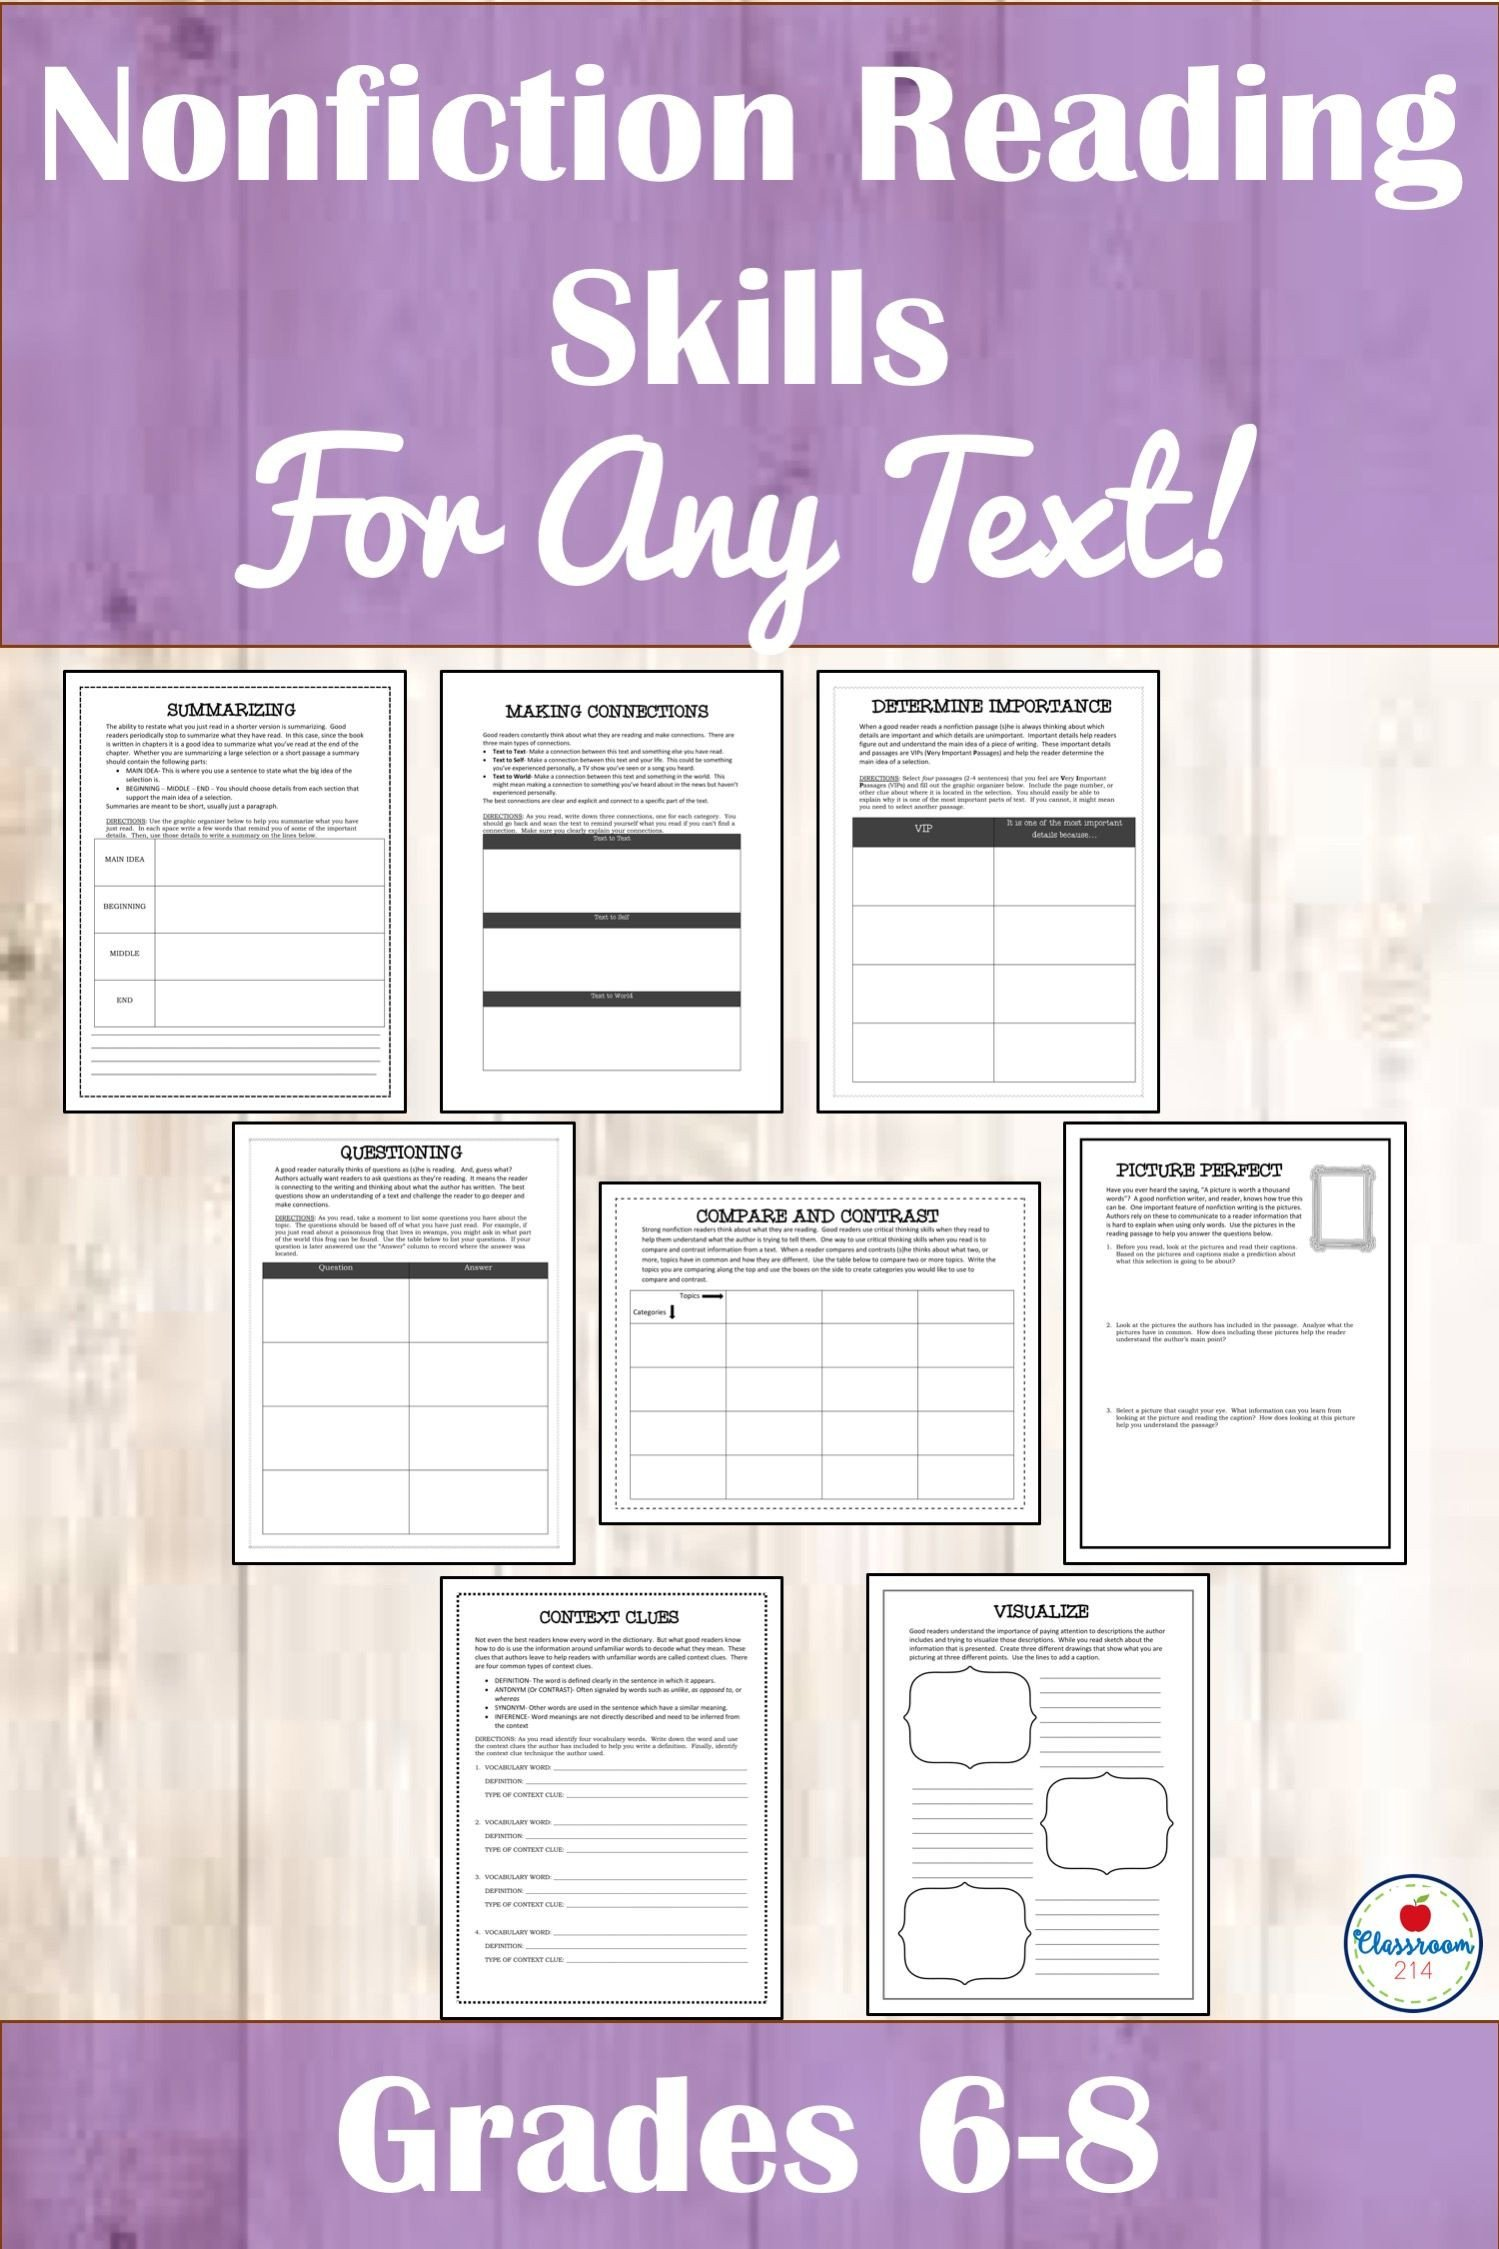 Informational Text Worksheets Middle School Mon Core Informational Texts and Nonfiction Reading